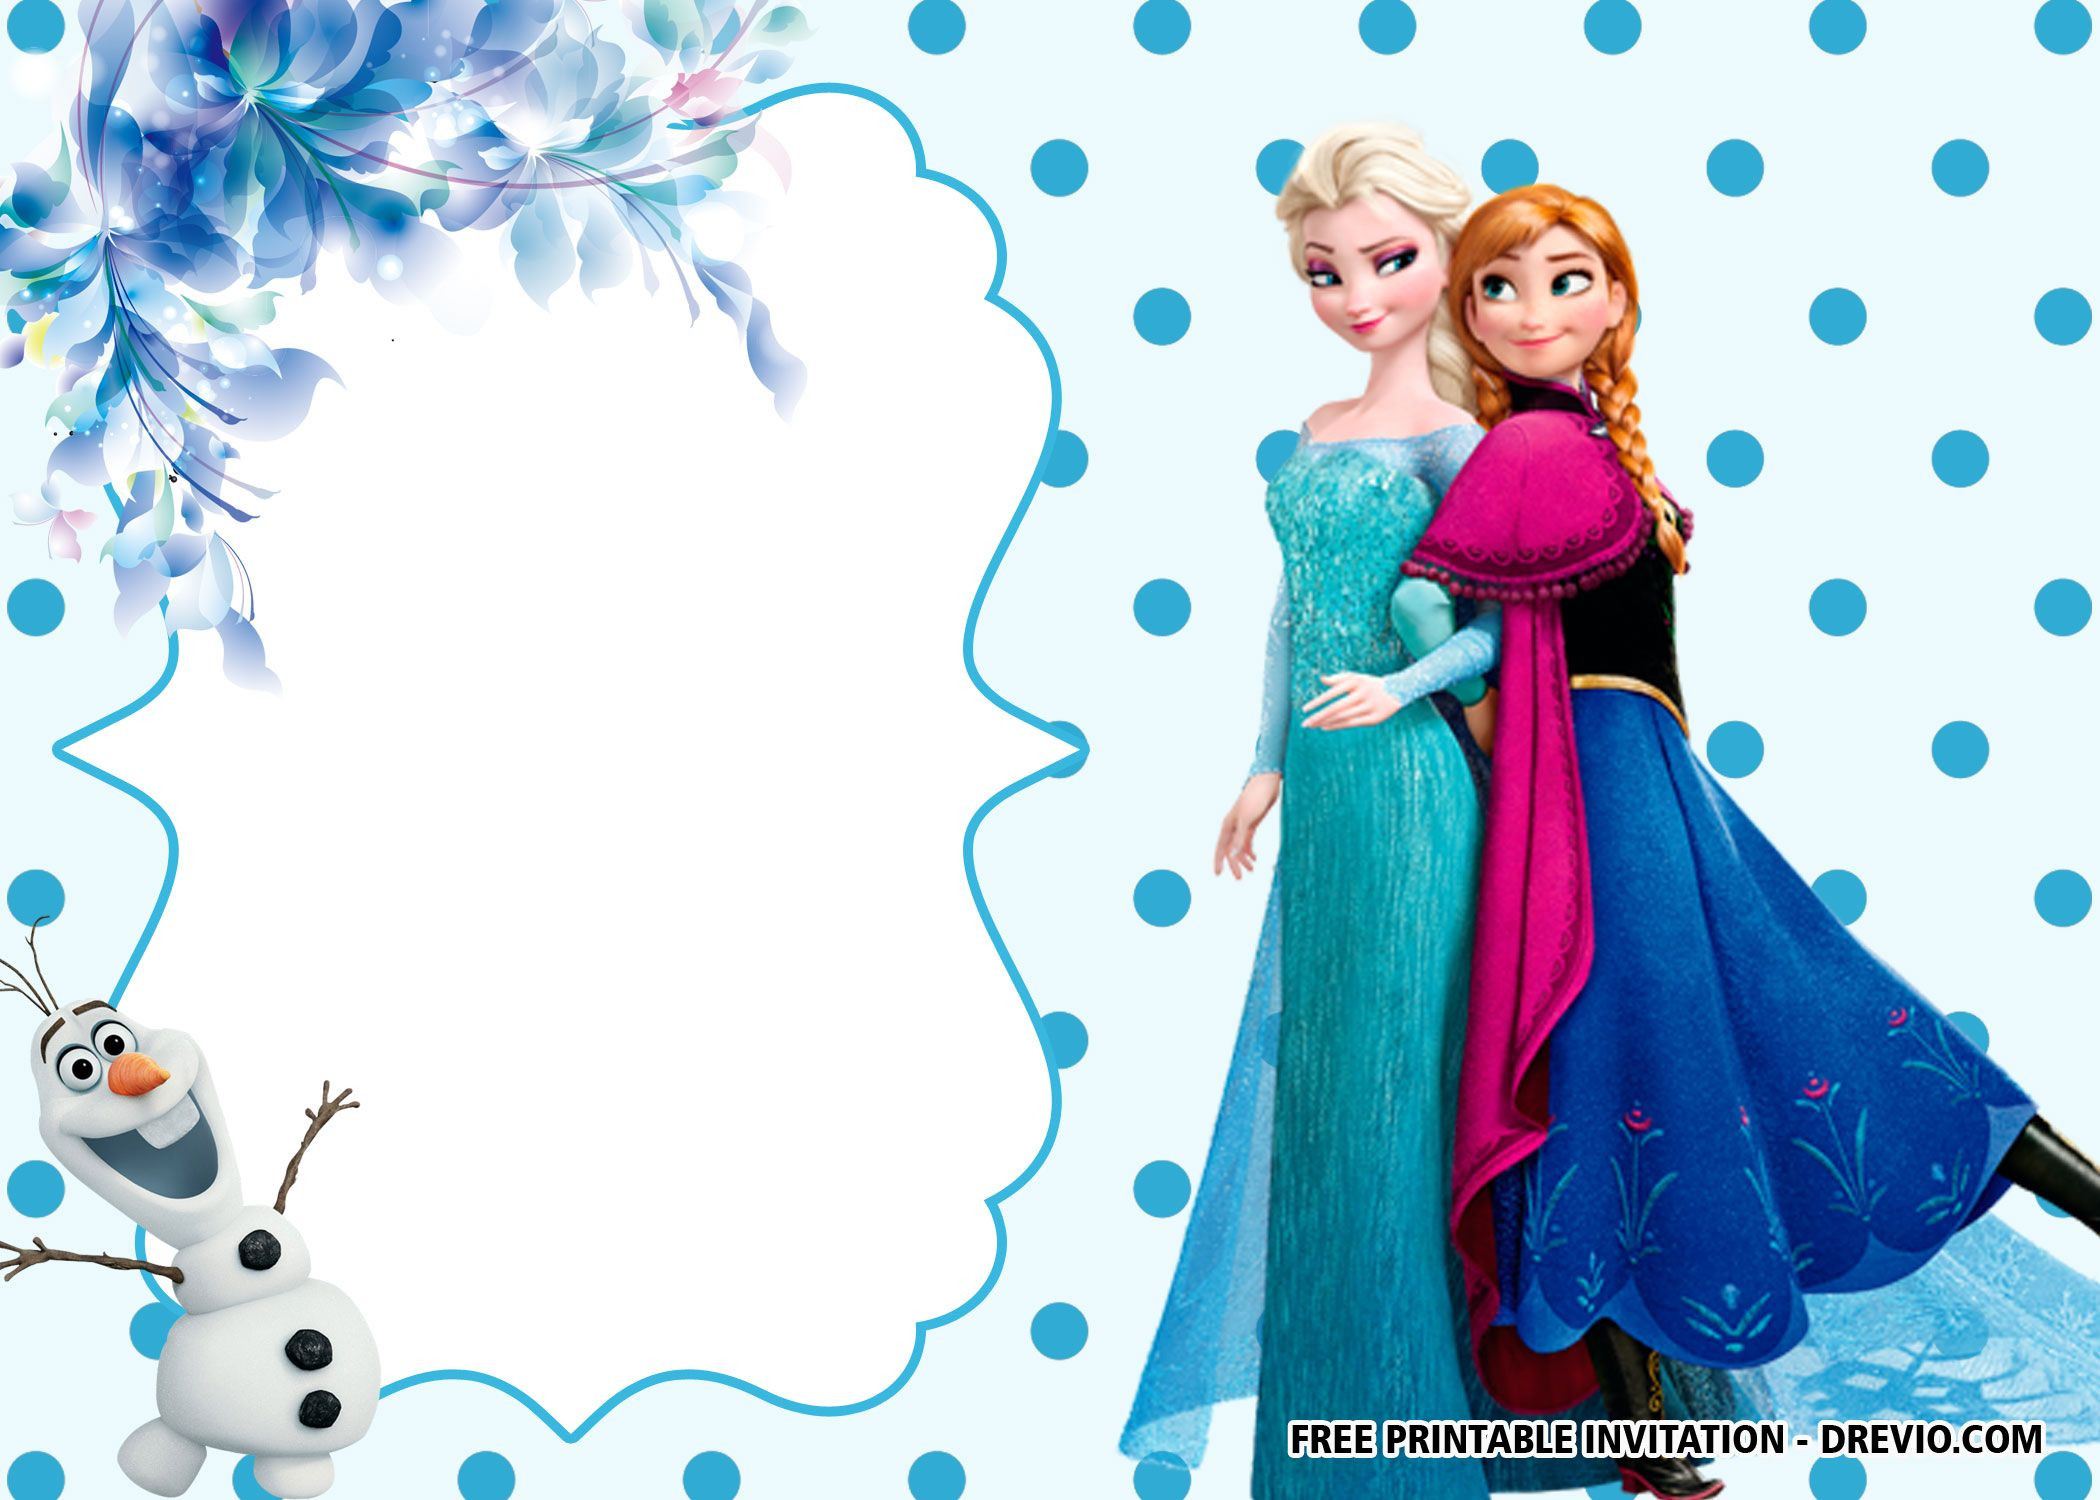 Frozen Printable Birthday Invitations Free Printable Frozen Anna and Elsa Invitation Templates